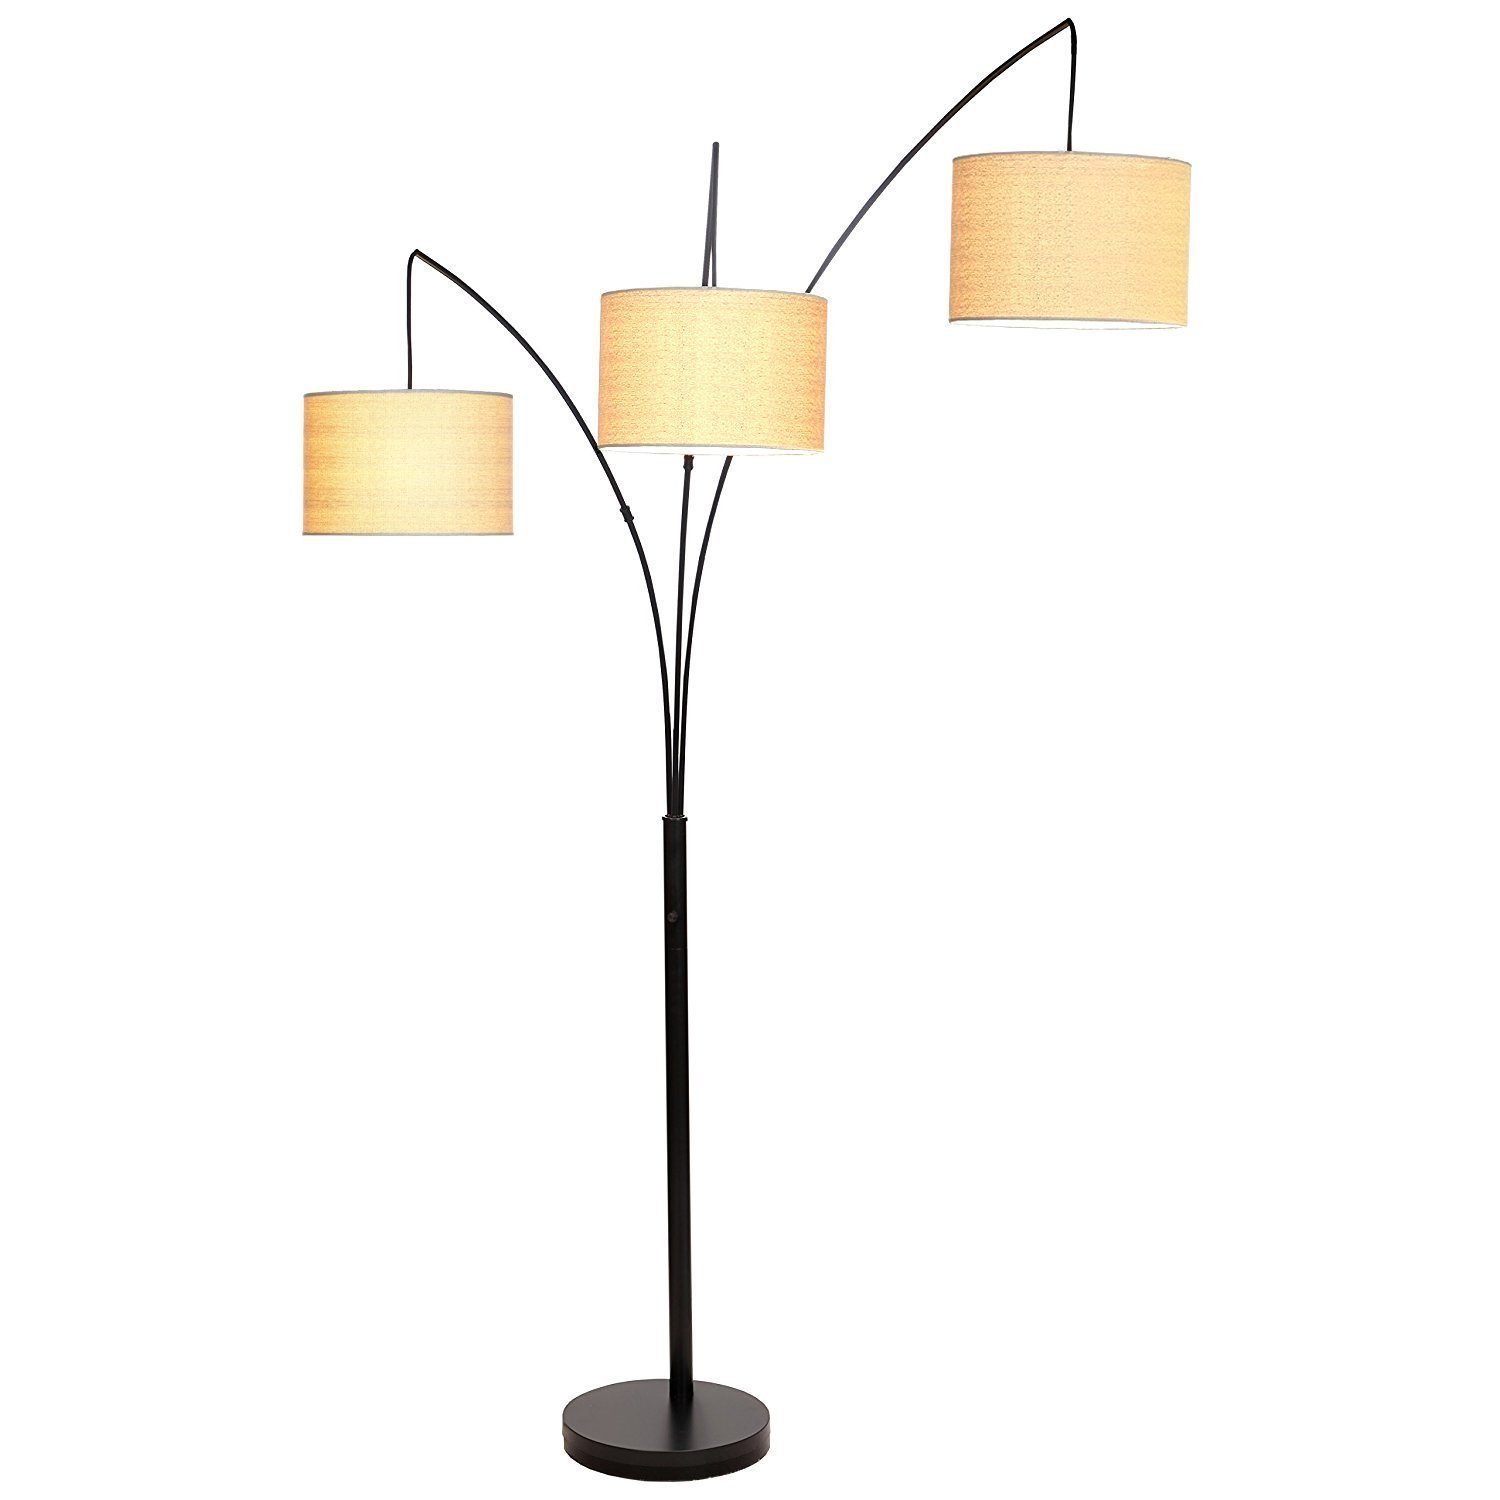 Brightech – Trilage LED Floor Lamp – Contemporary Stylish Elegance in a Black Finish – Sleek Metal Stand with Open Burlap Shades - Includes Brightech's LED 9.5-Watt Bulb - Beige Shade